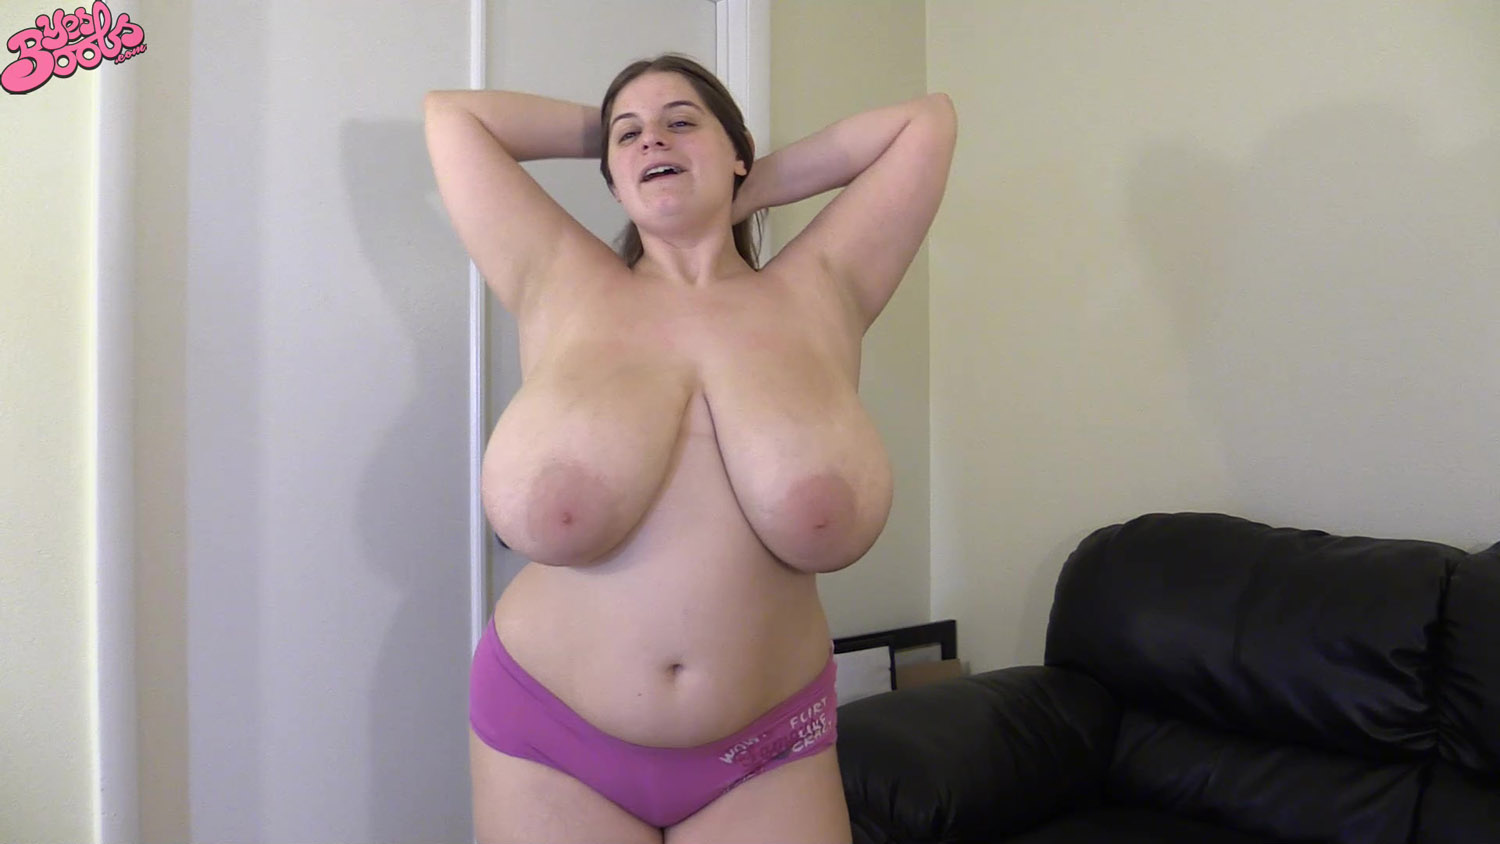 bbw nude jumping jacks